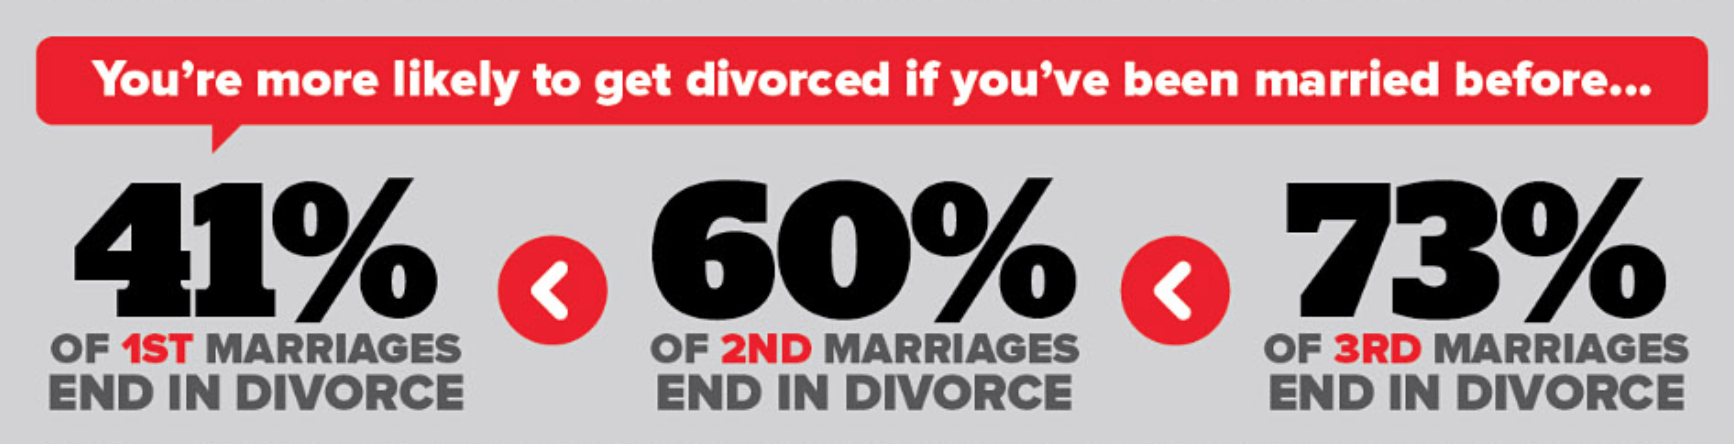 Divorce in America – The Infographic